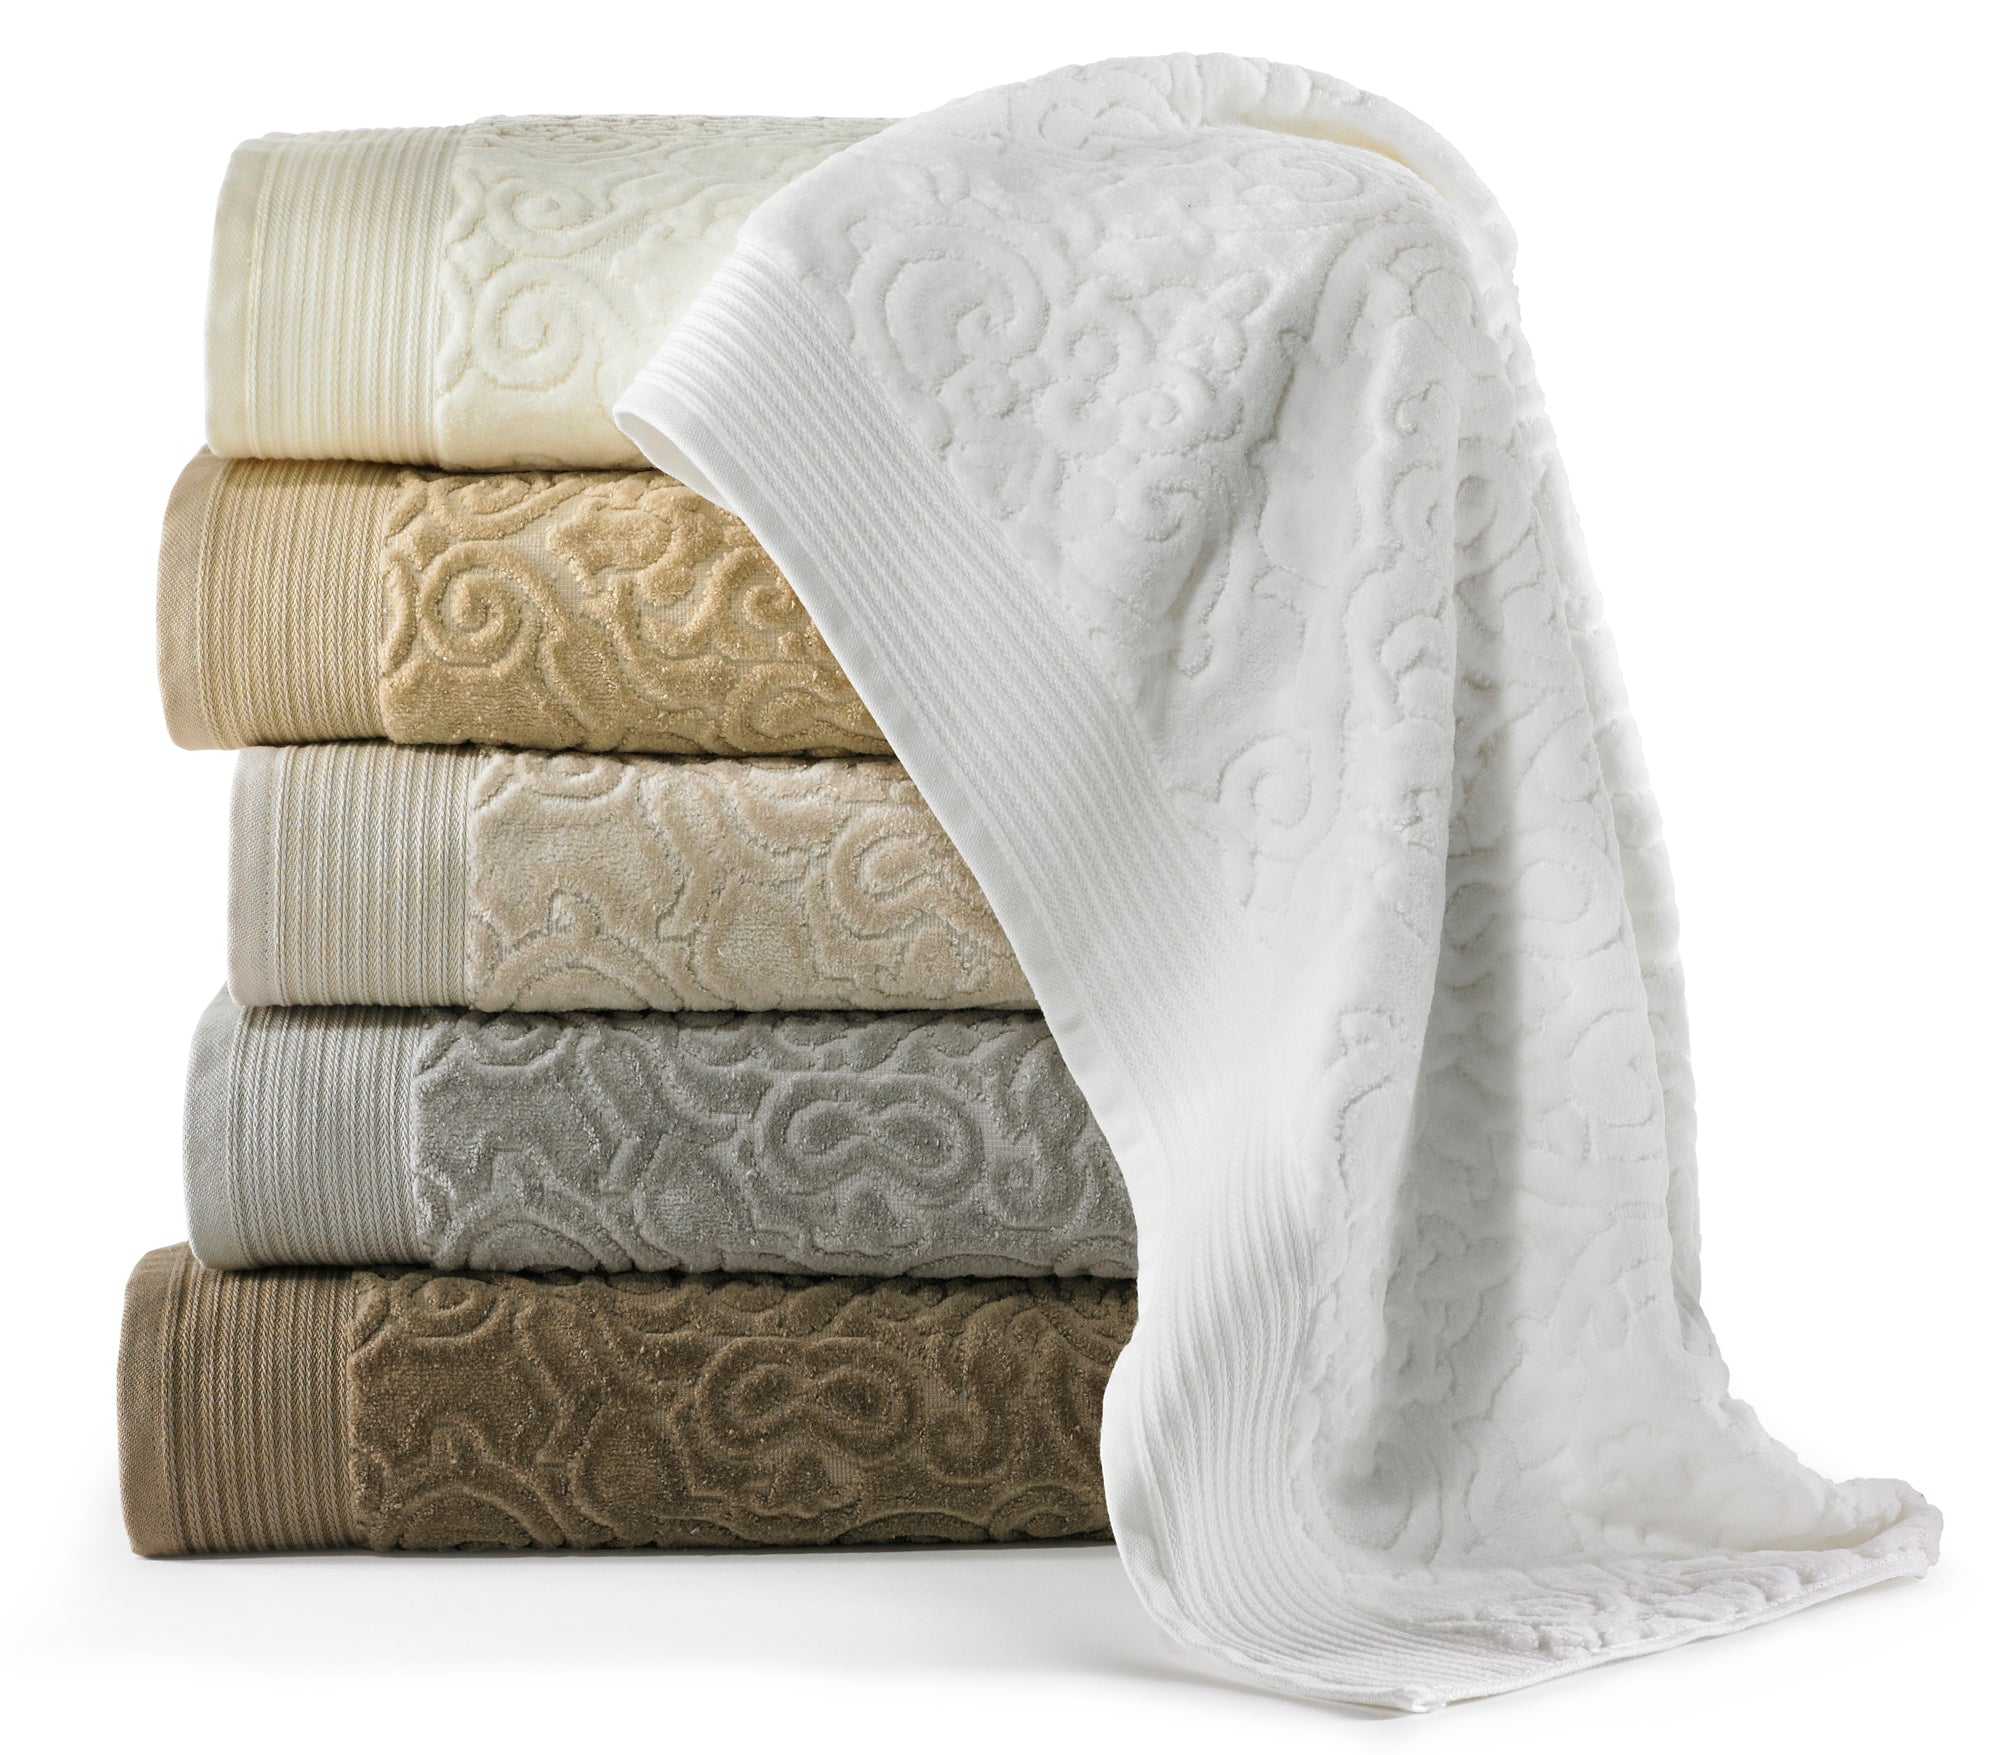 Plush bath towels in a modern velour jacquard with a swirling texture